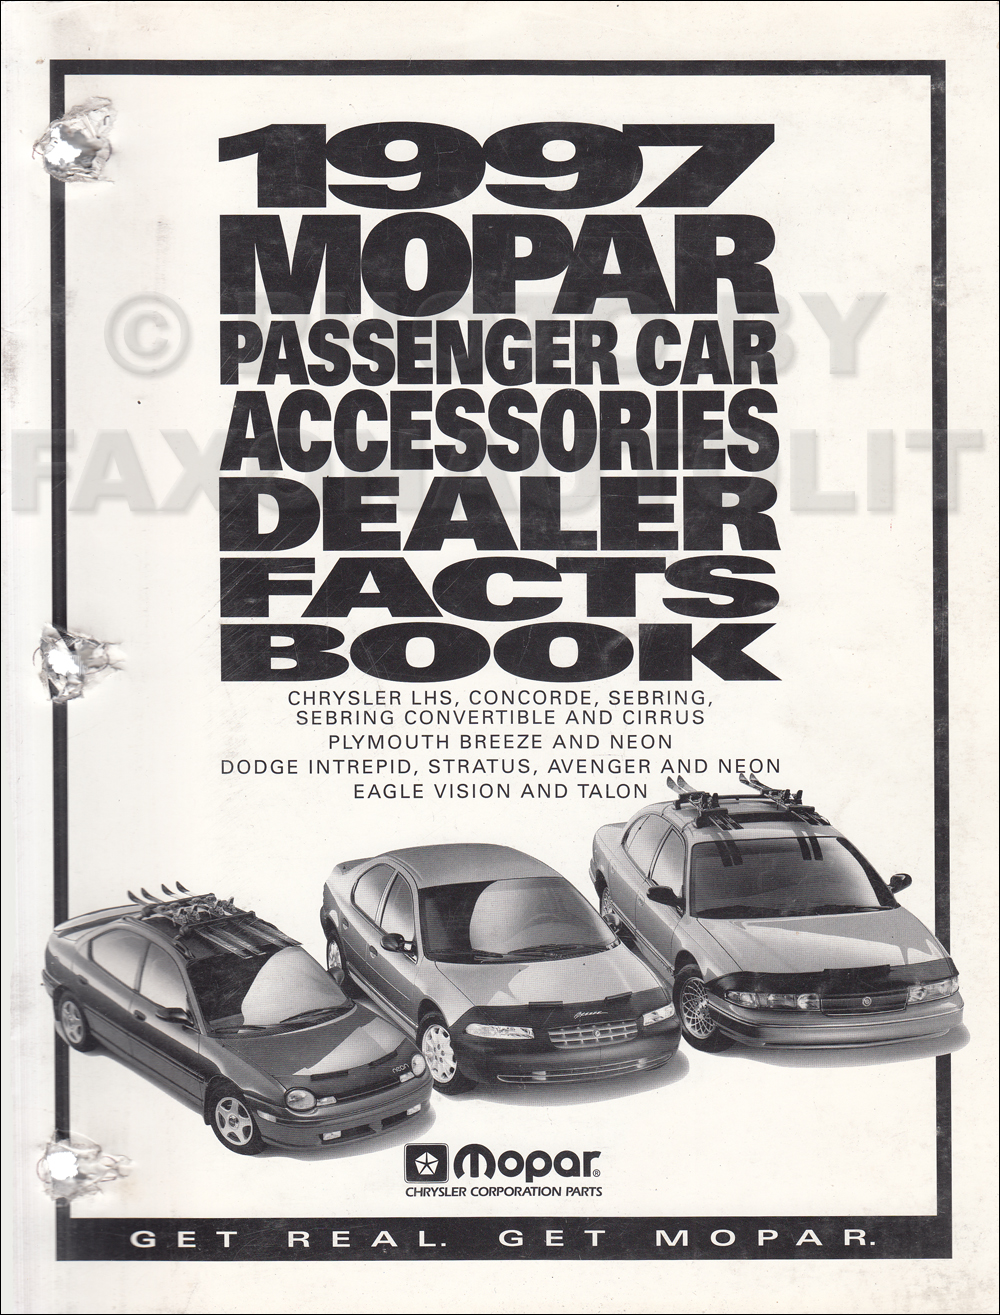 1997 Mopar Car Accessories Facts Book Original